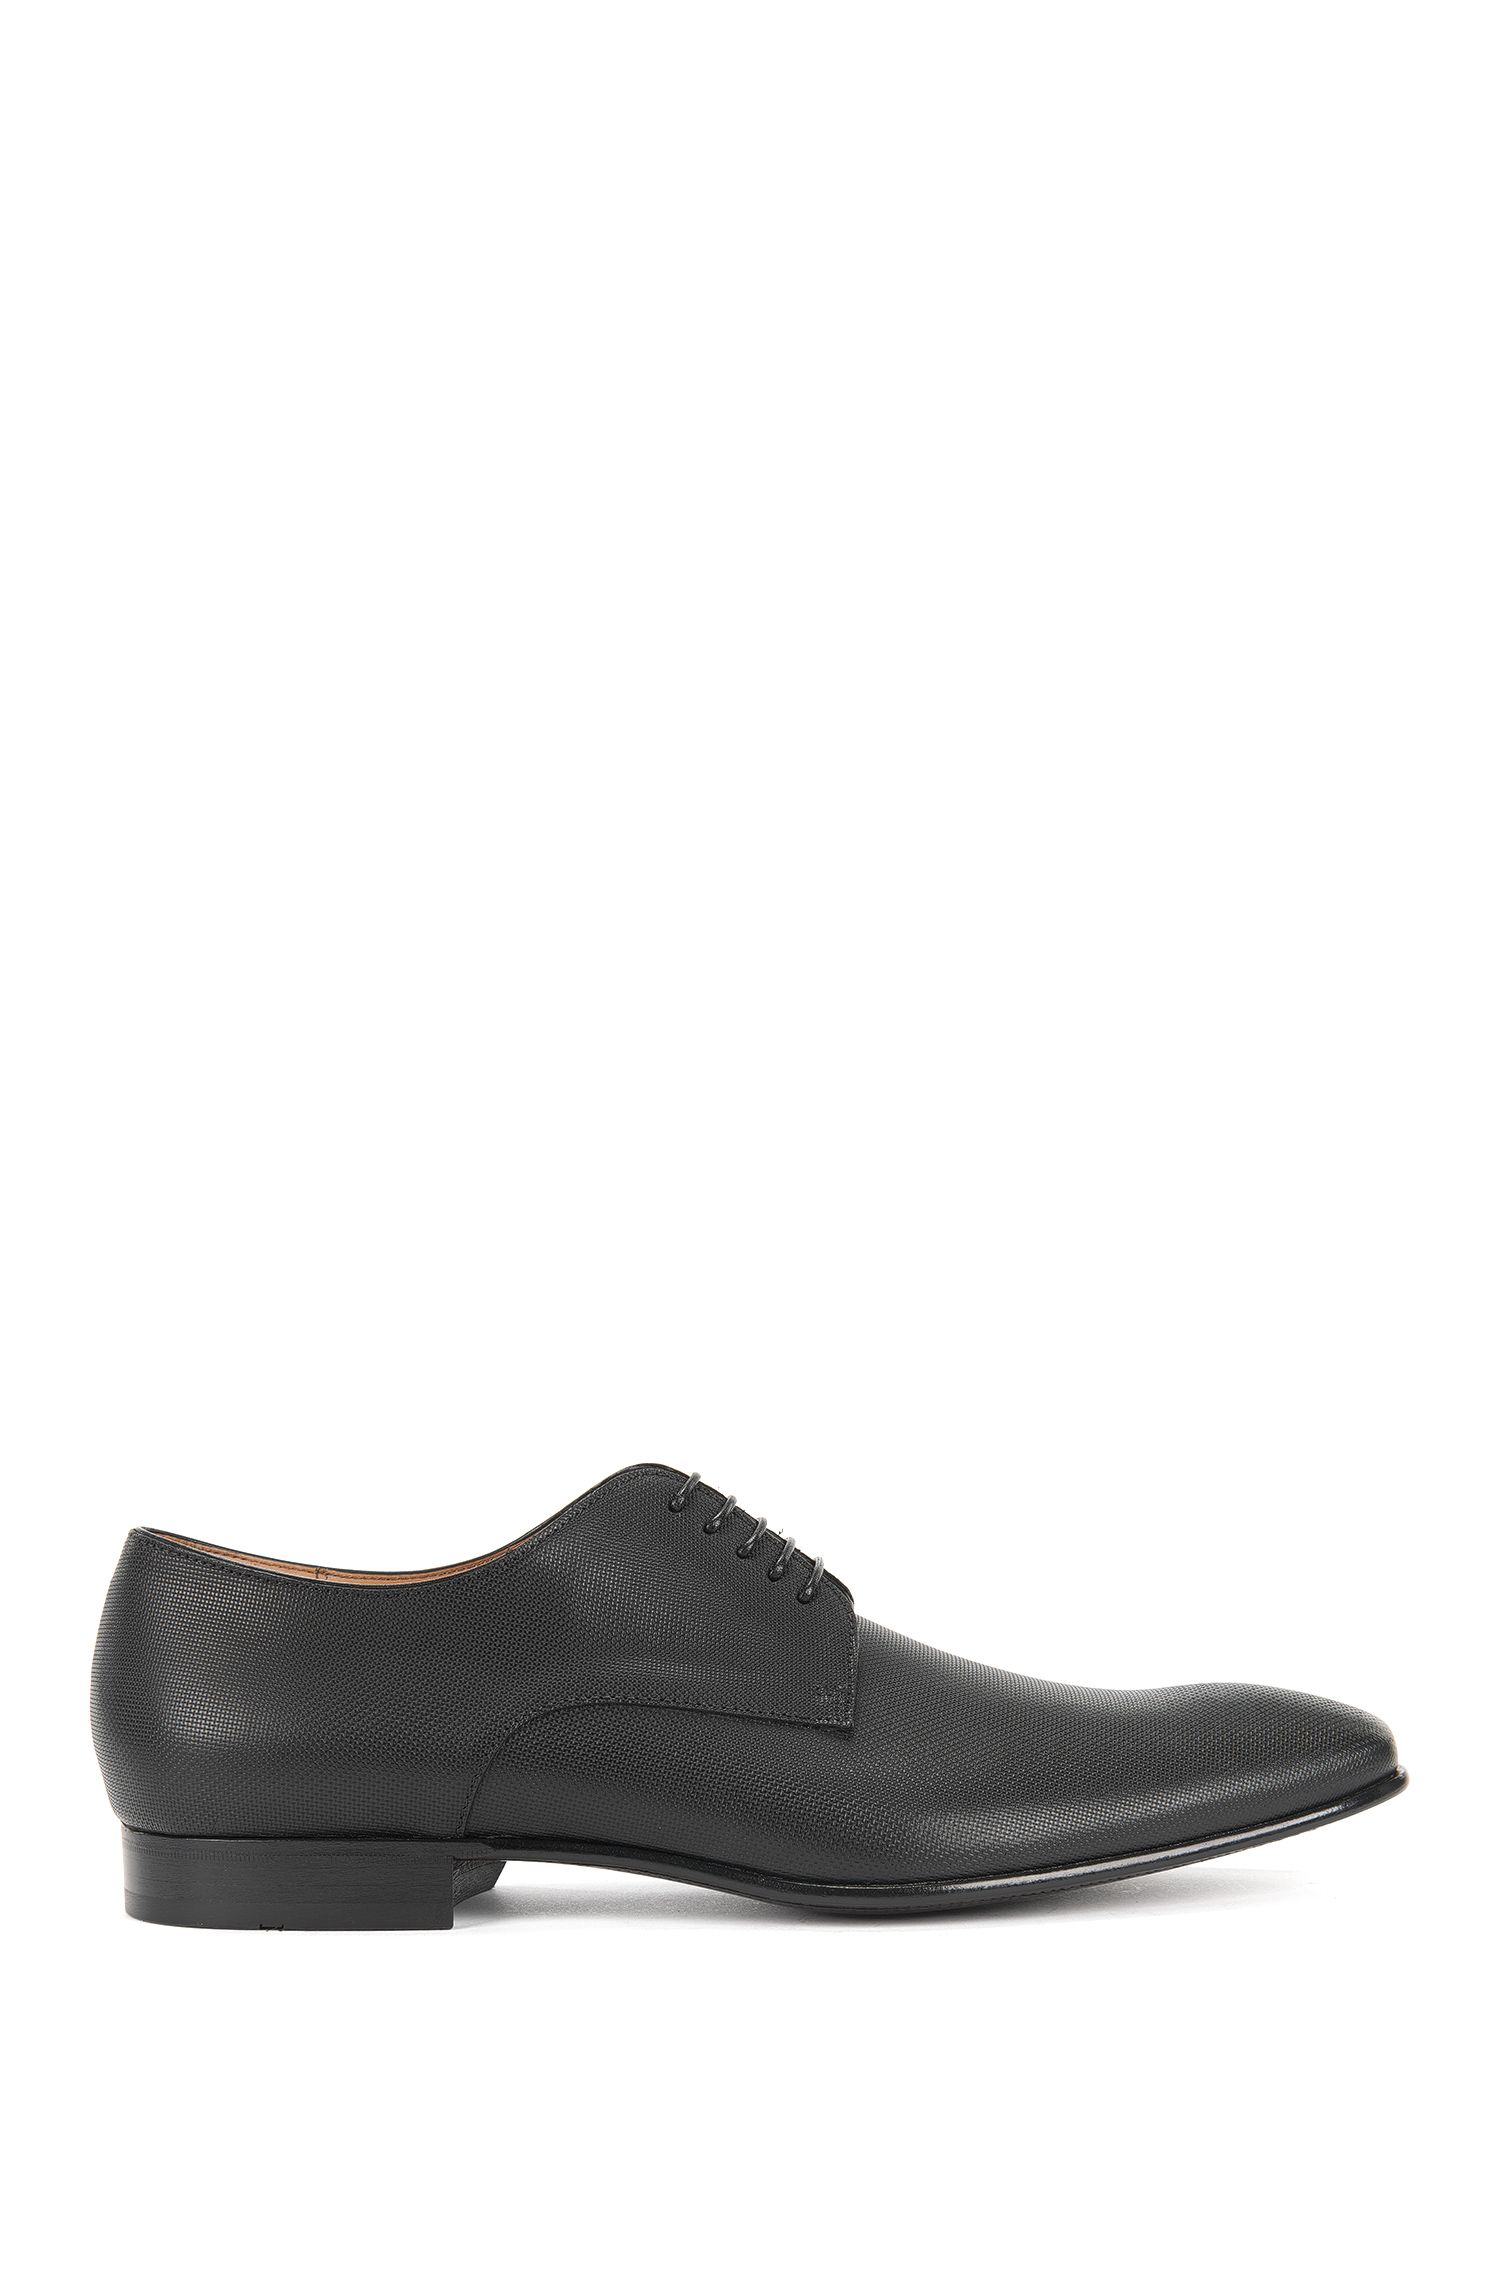 Italian Leather Derby Dress Shoe | Prindo